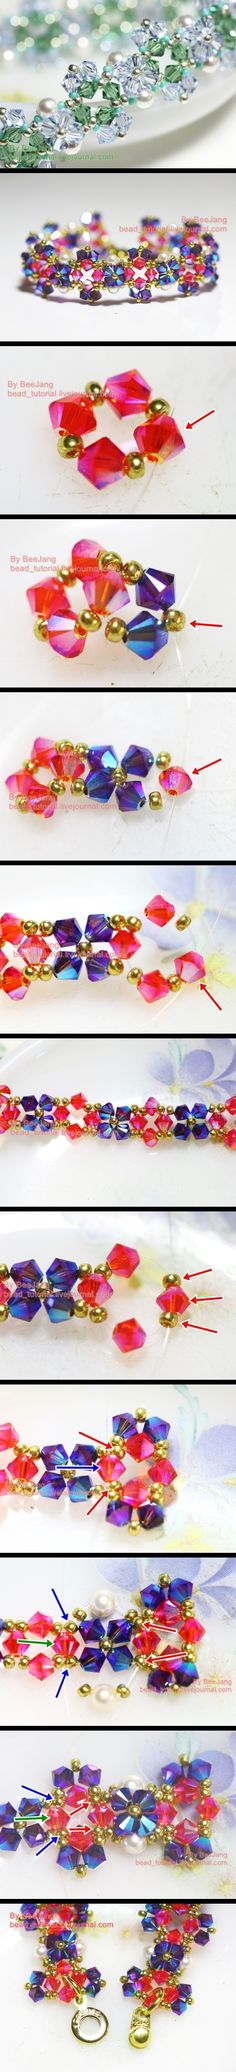 Crystal Bracelet Tutorial